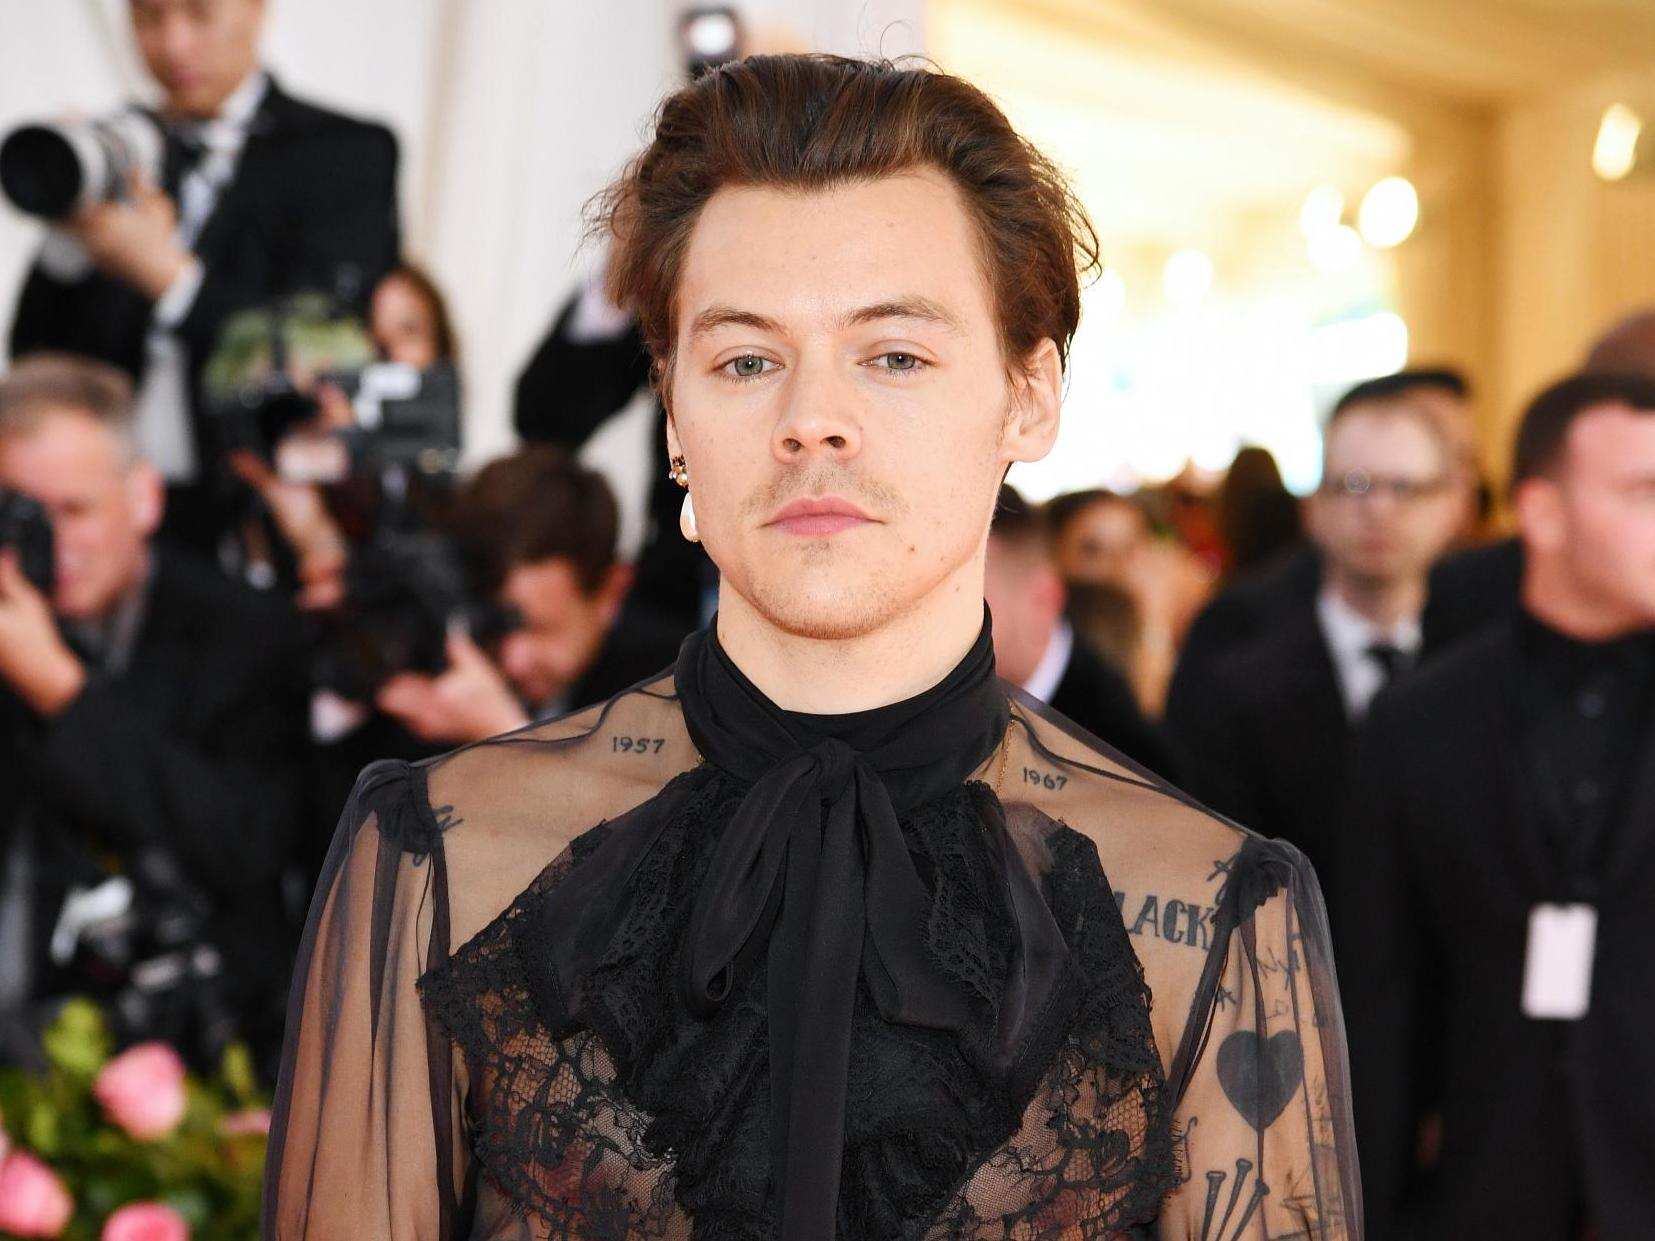 Harry Styles 'locked himself in his bedroom at night' after being stalked by homeless man